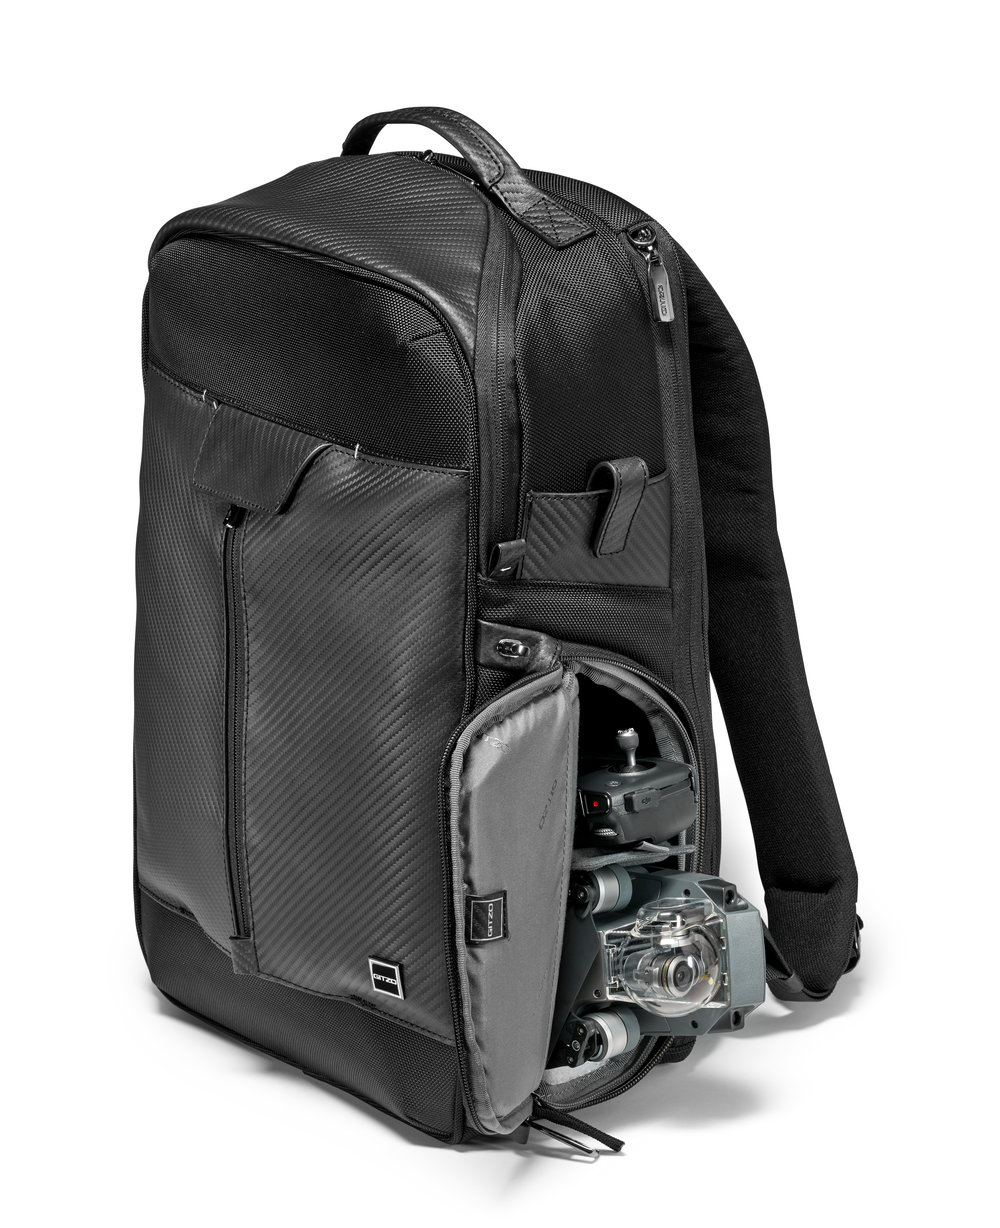 HR-GITZO_camera_bag_GCB100BP_internal drone.jpg